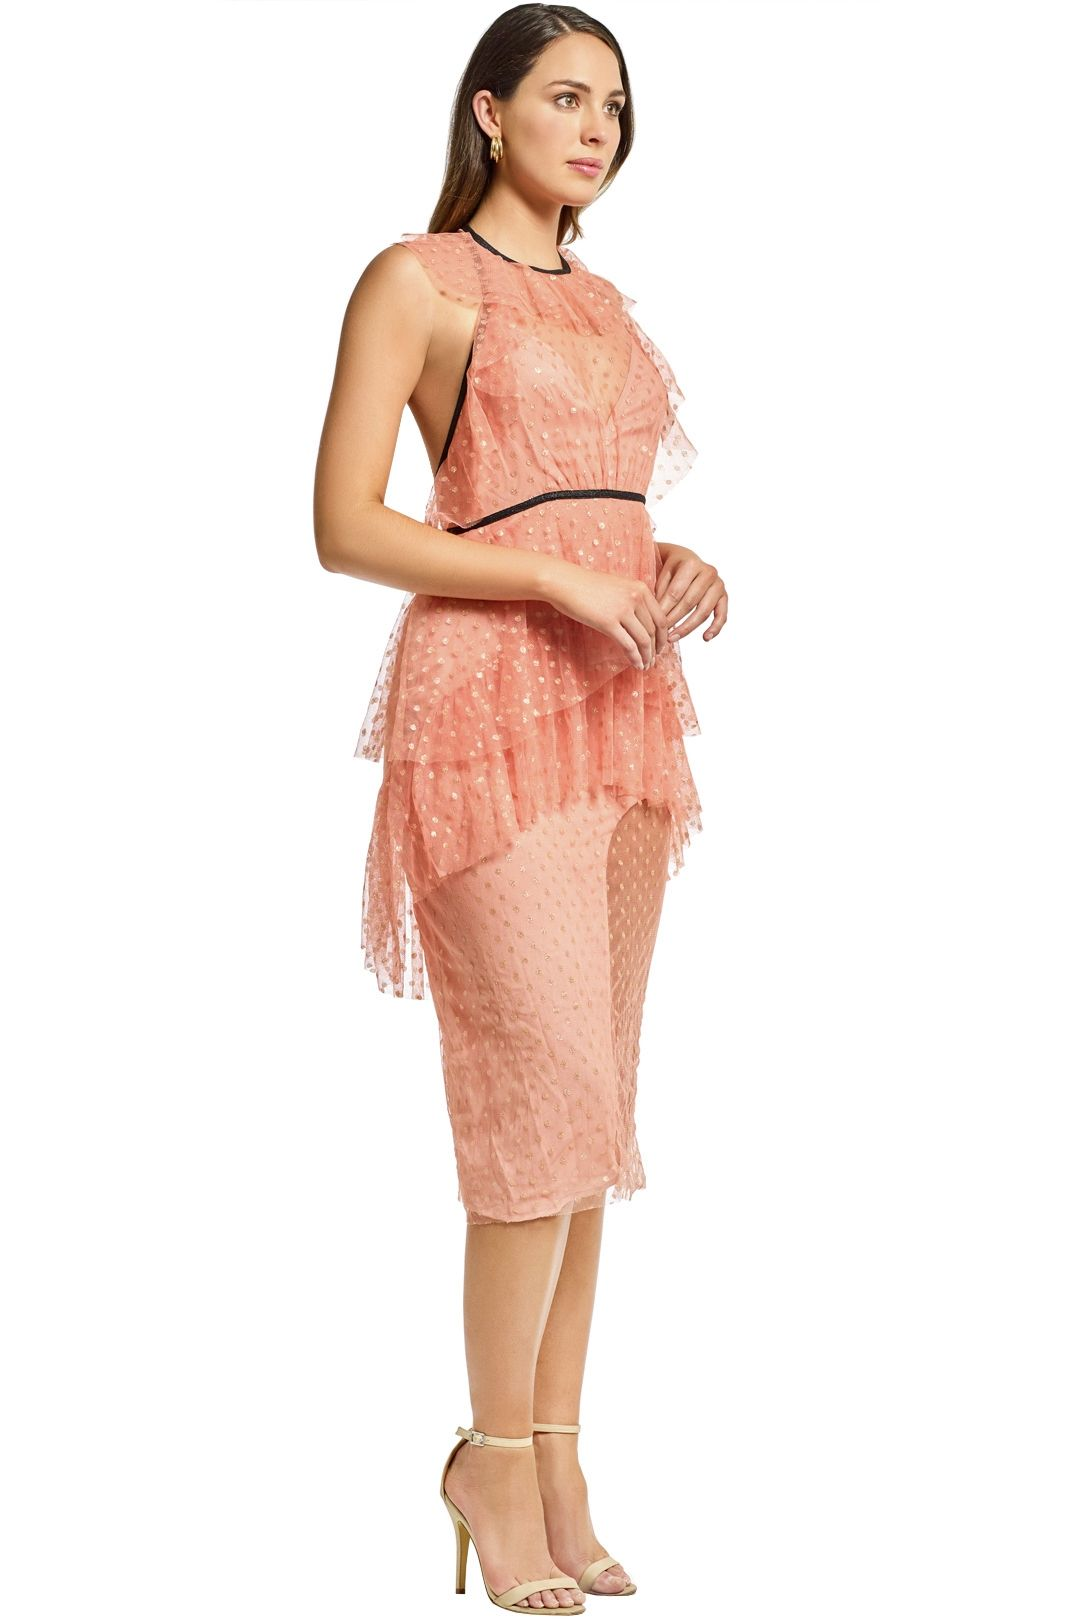 Alice McCall - You and Me Dress - Rose - Side